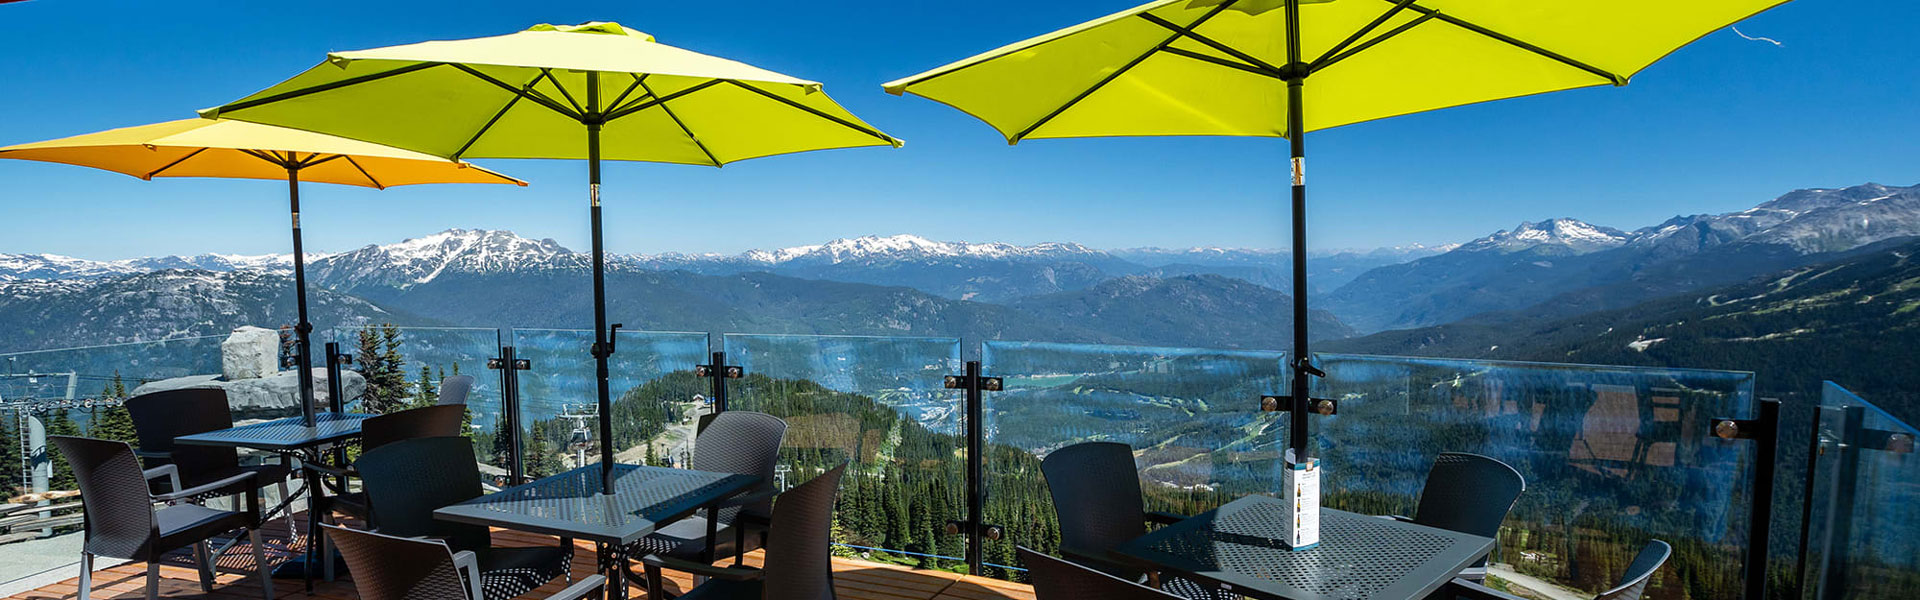 Whistler Rail Vacations | Summer Patio Season